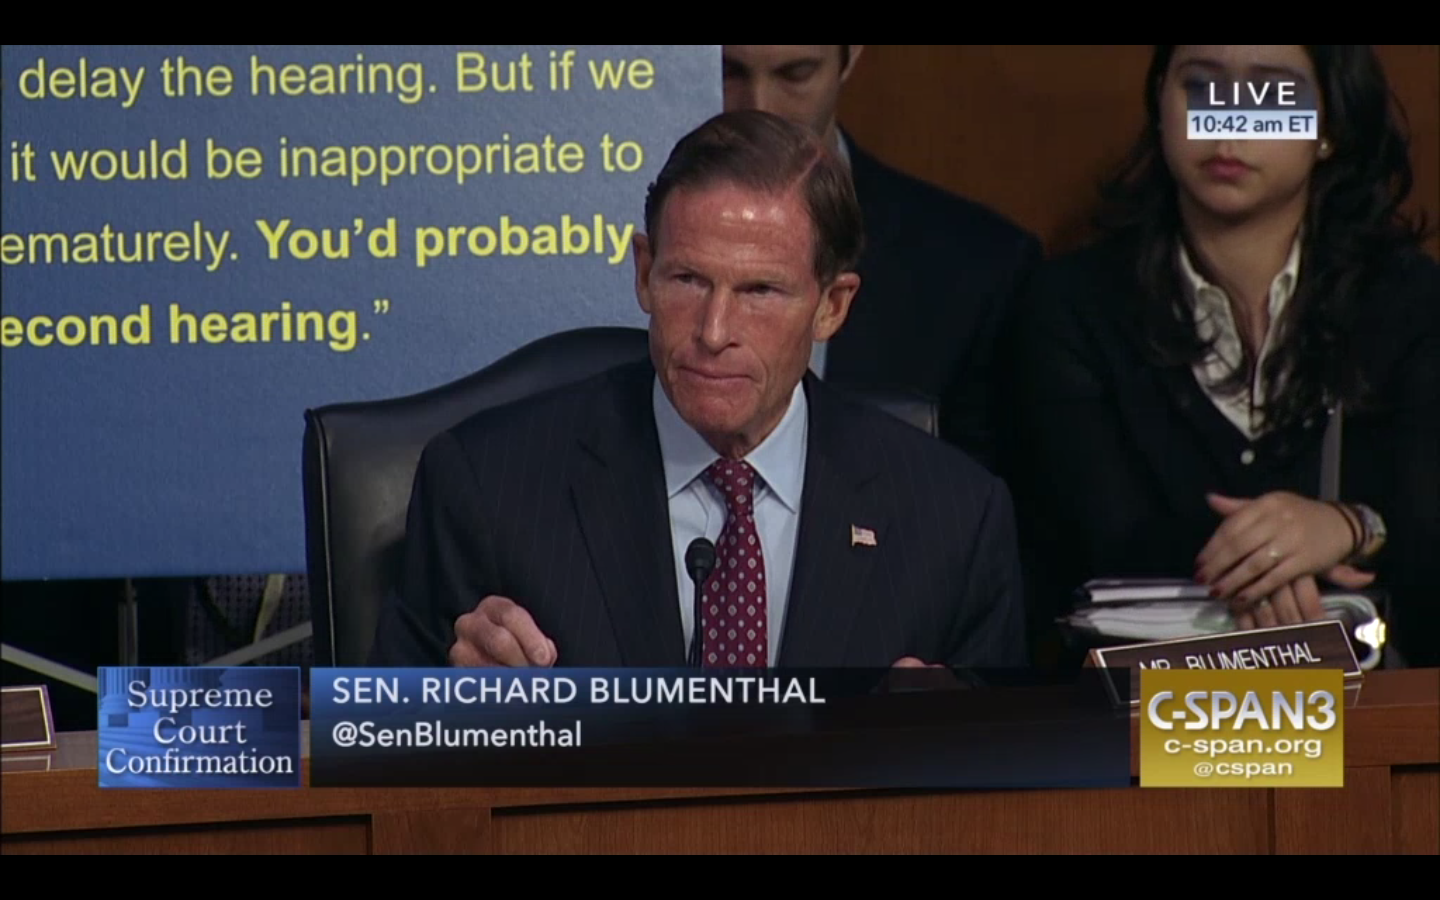 Blumenthal leads attempt to adjourn Kavanaugh SCOTUS confirmation hearing